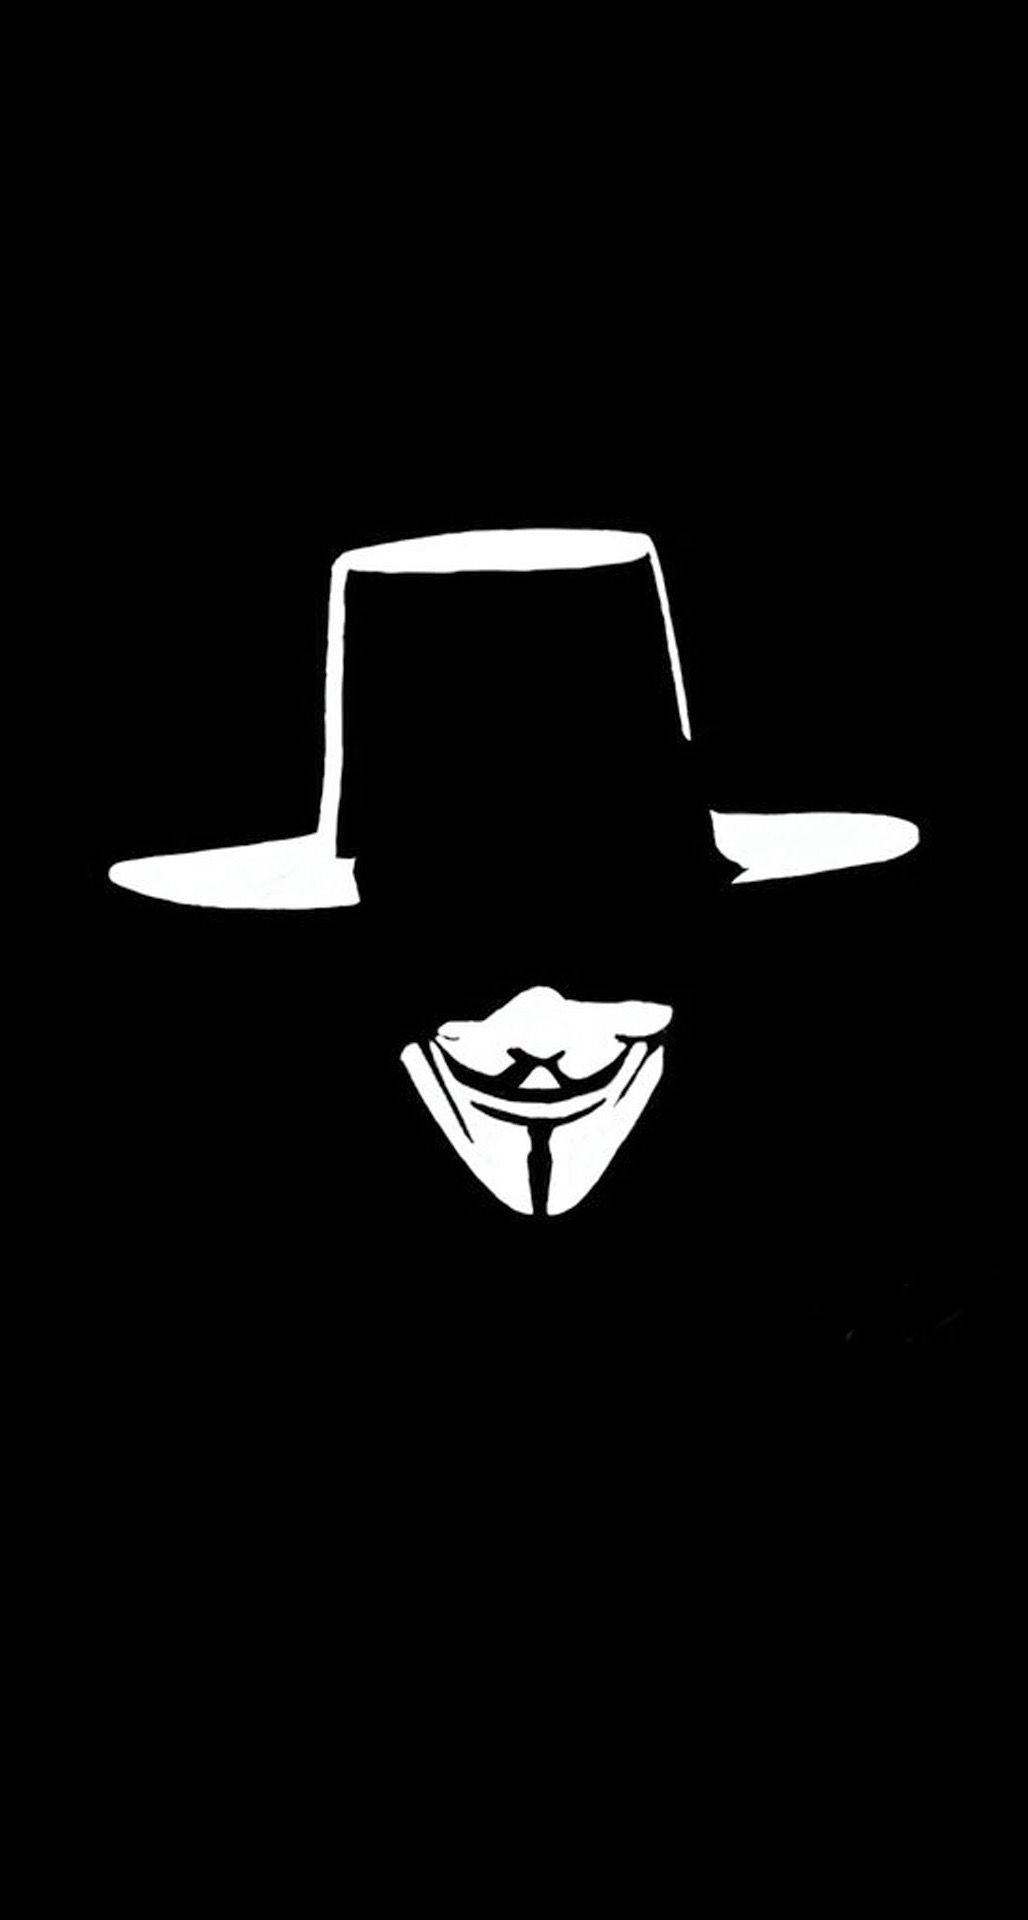 Best Wallpaper Halloween Lock Screen - V-For-Vendetta-Hat-Face-Illustration-iPhone-6-Plus-HD-Wallpaper  You Should Have_801089.jpg